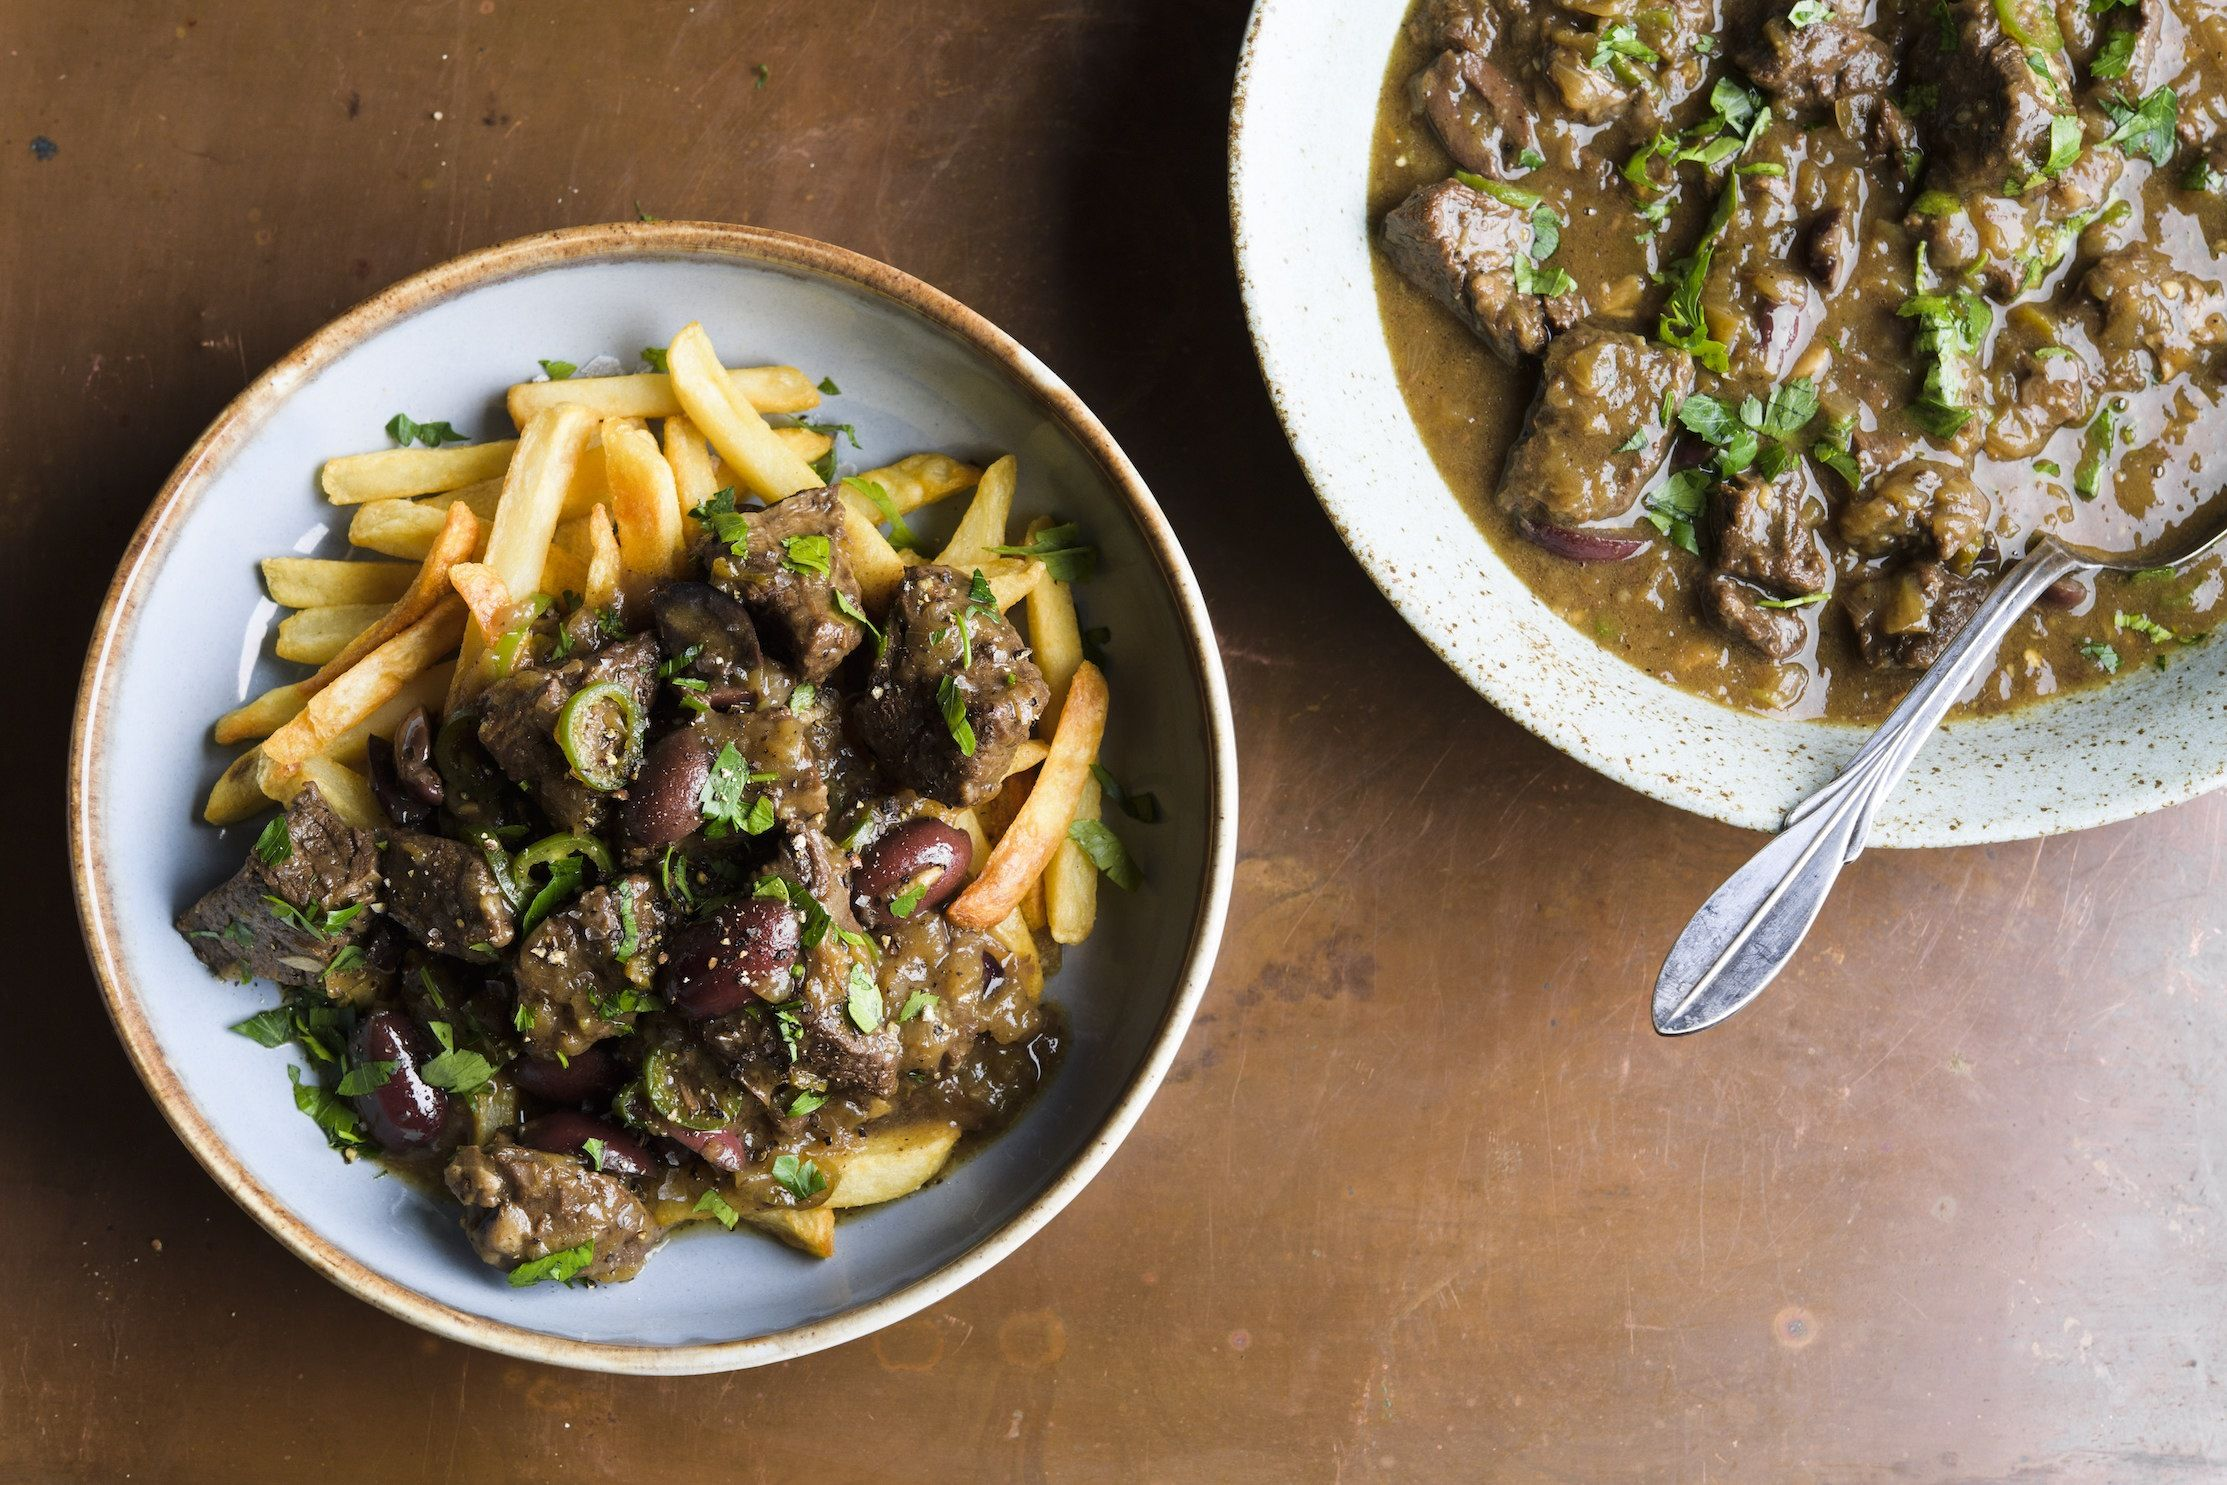 Spicy South African Beef Stew with Olives